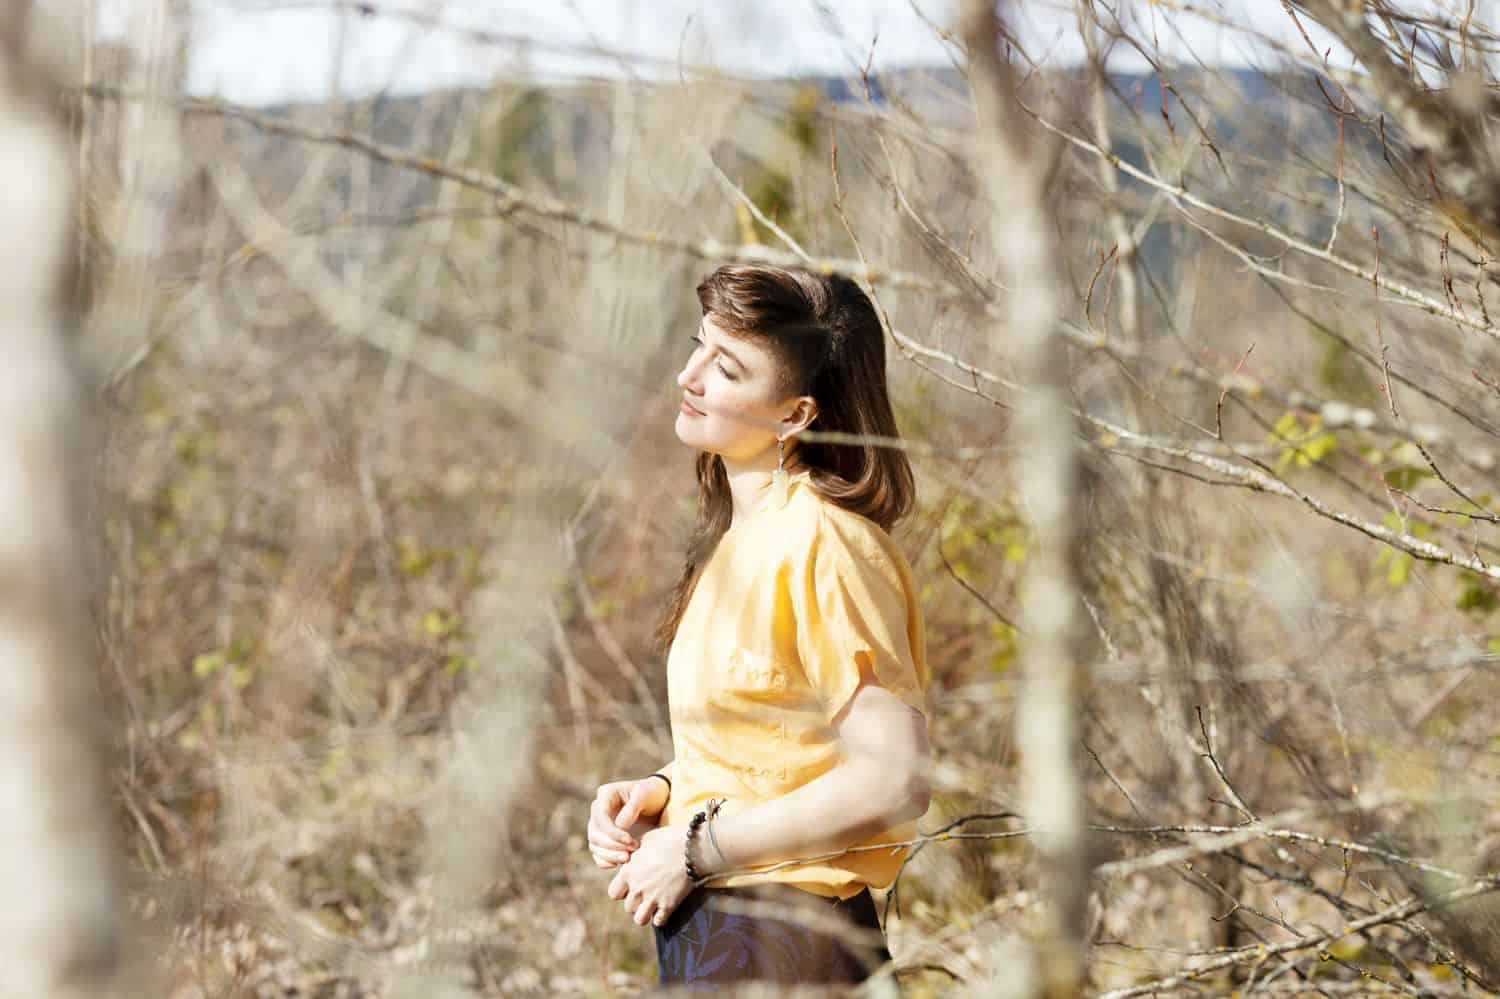 A person in a yellow shirt faces the sun while standing in the woods being photographed by Sofia Angelina